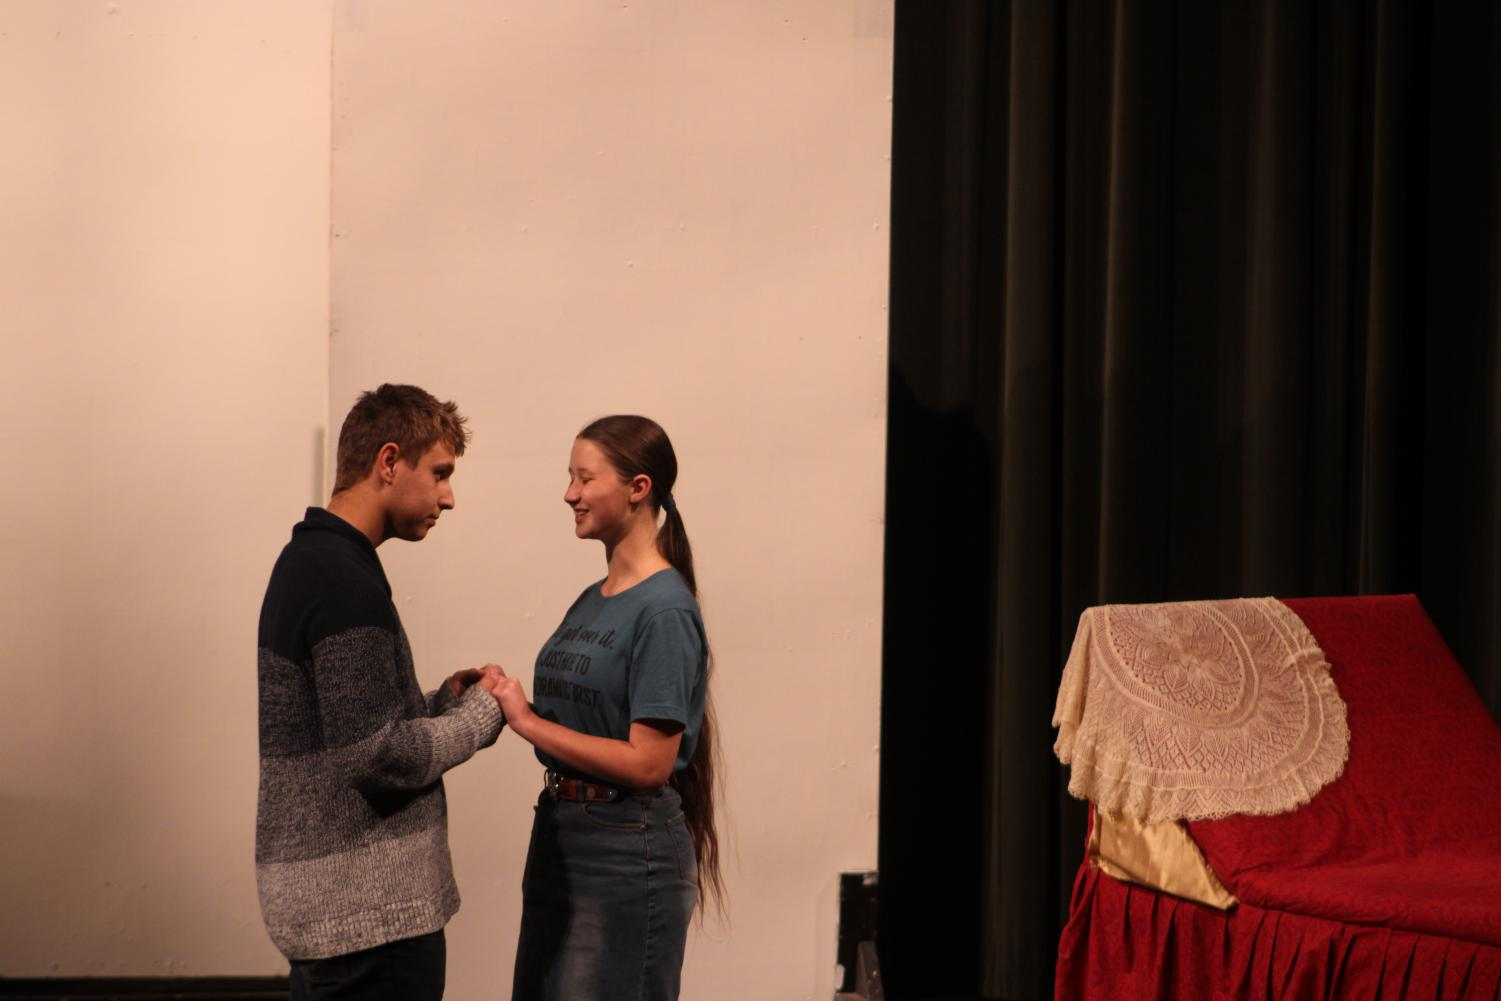 %22The+Importance+of+Being+Earnest%22+rehearsal